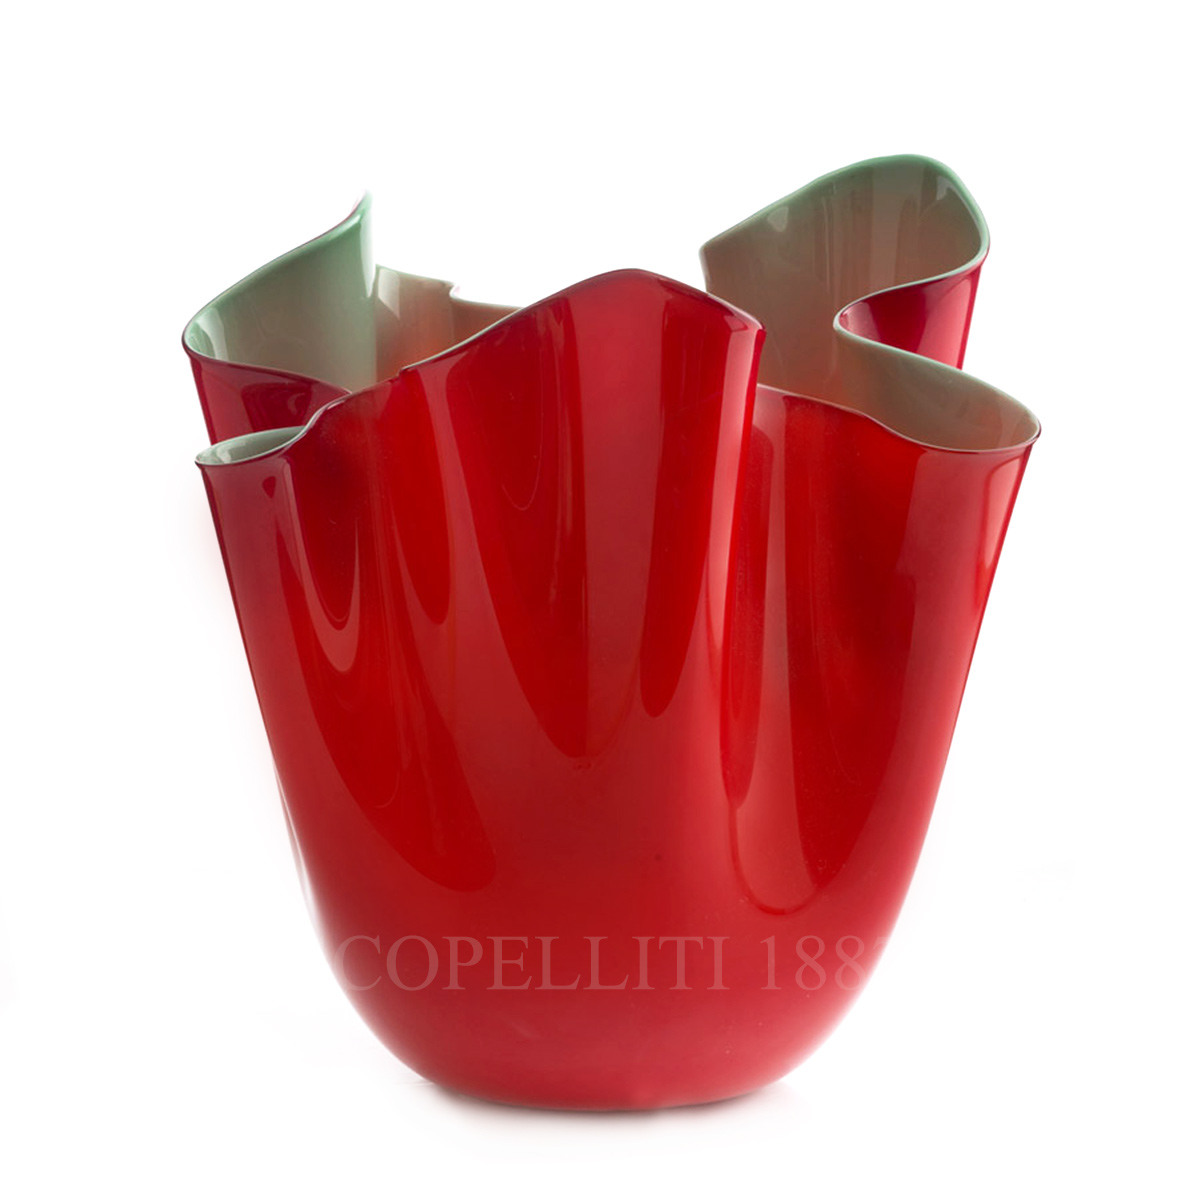 fazzoletto venini murano glass vase red green